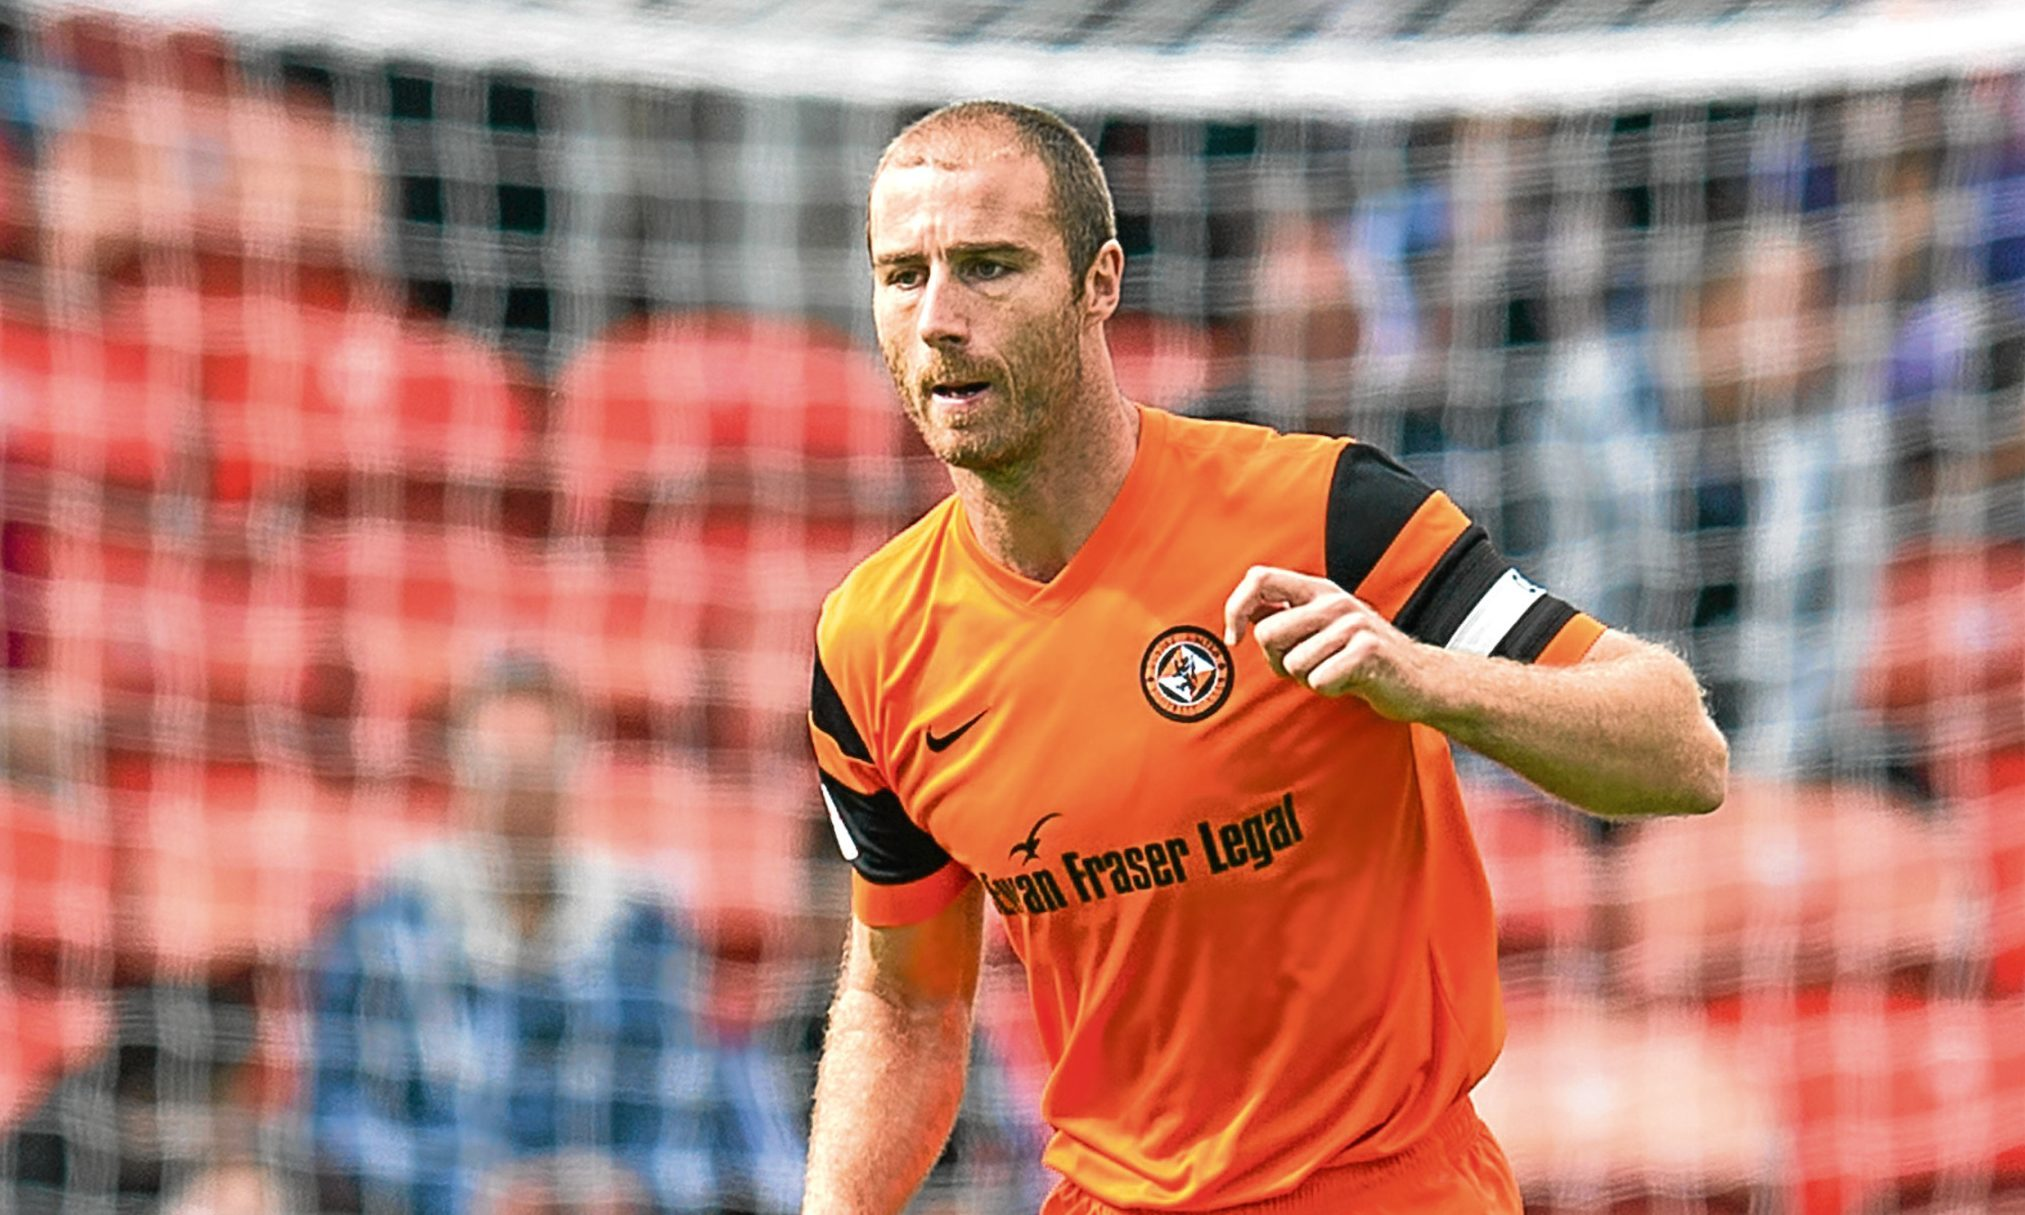 Dundee United skipper Sean Dillon in action